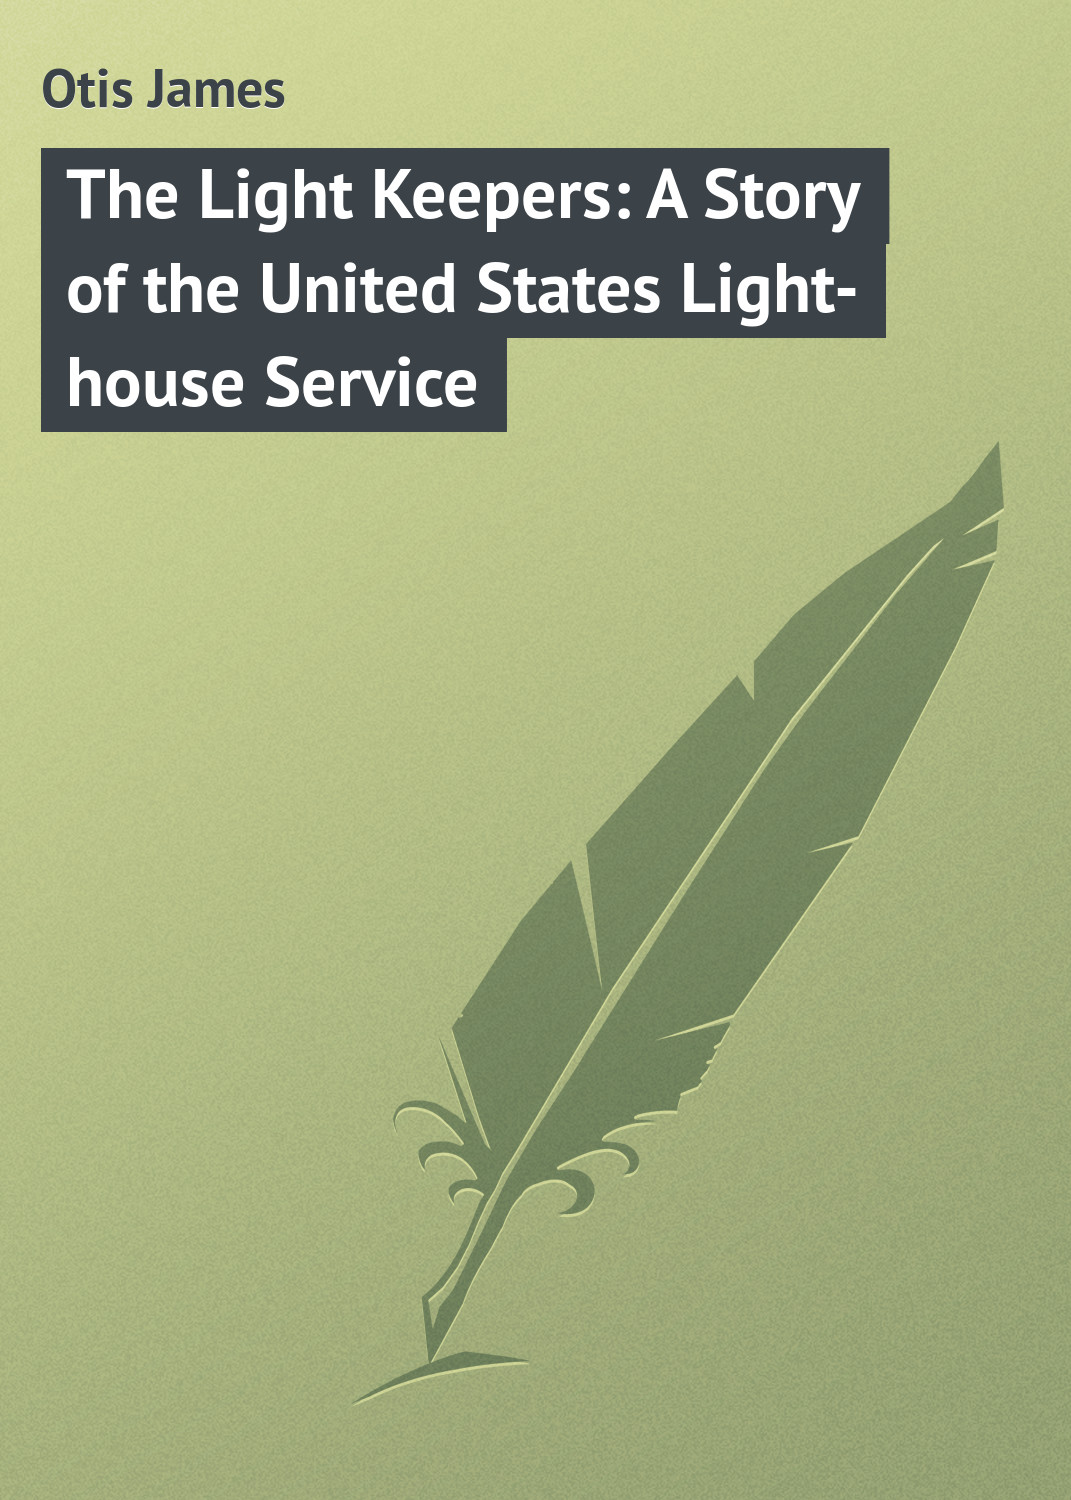 Otis James The Light Keepers: A Story of the United States Light-house Service шкаф для ванной the united states housing